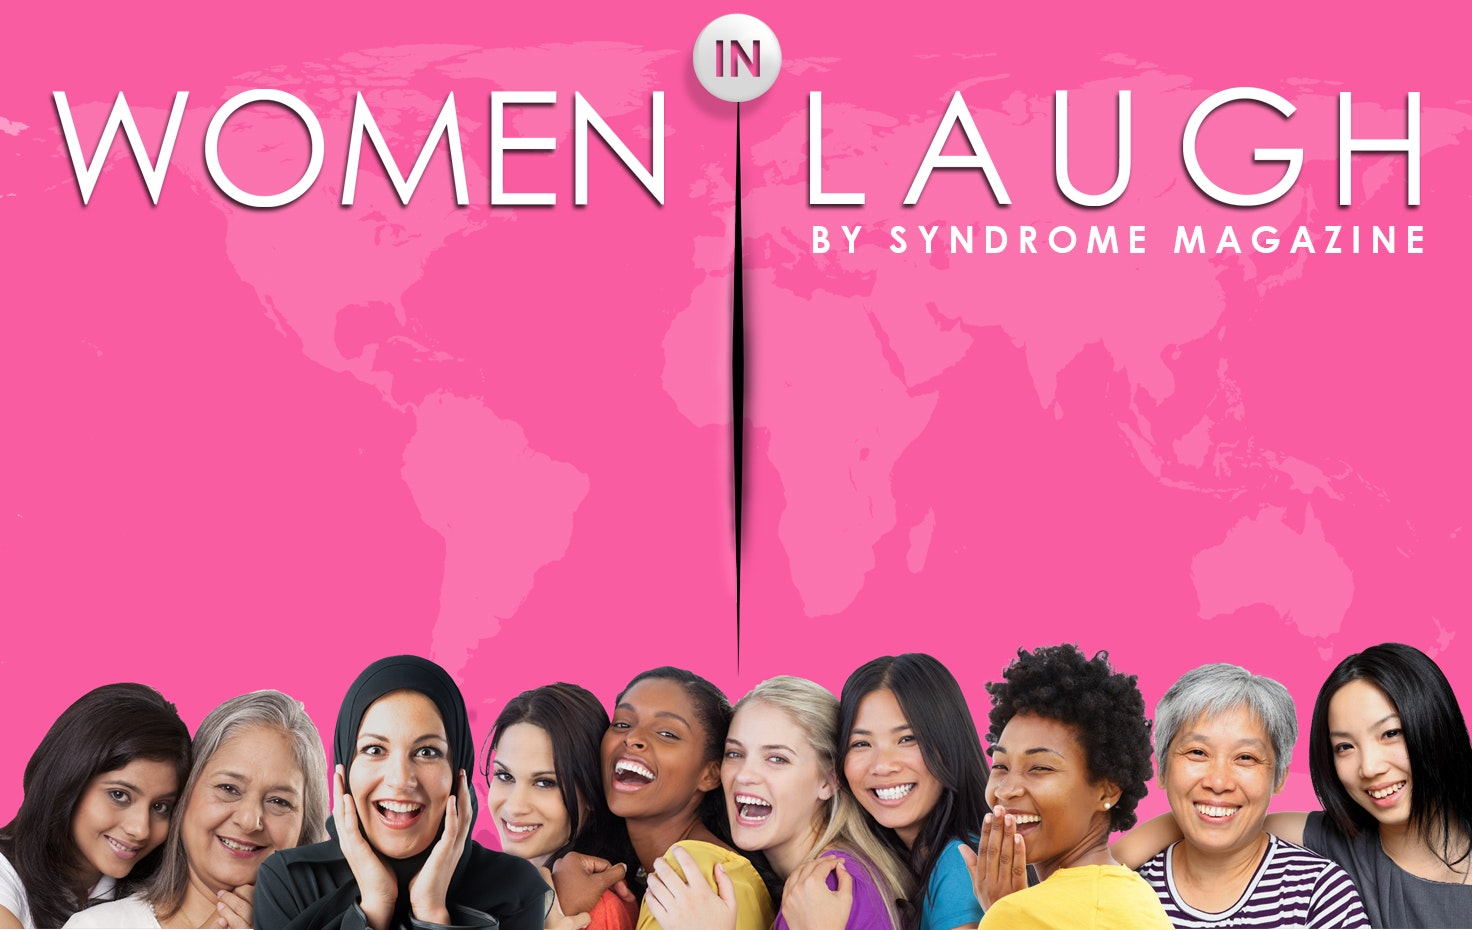 Women in Laugh by Syndrome Magazine